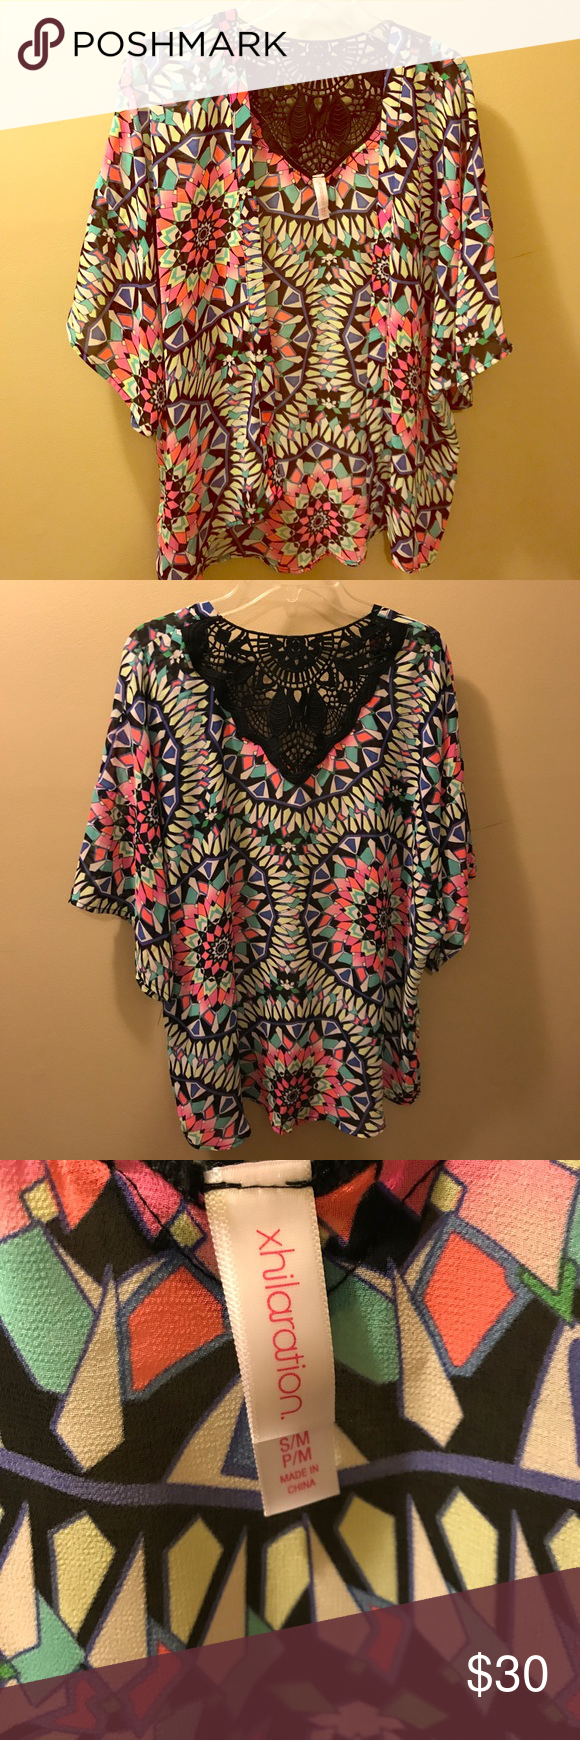 Geometric colorful kimono New without tags! Bright and perfect for summer! Either over a bathing suit or a cute solid dress! Tag says S/M. Closer to size small in my opinion! Xhilaration Tops Tunics